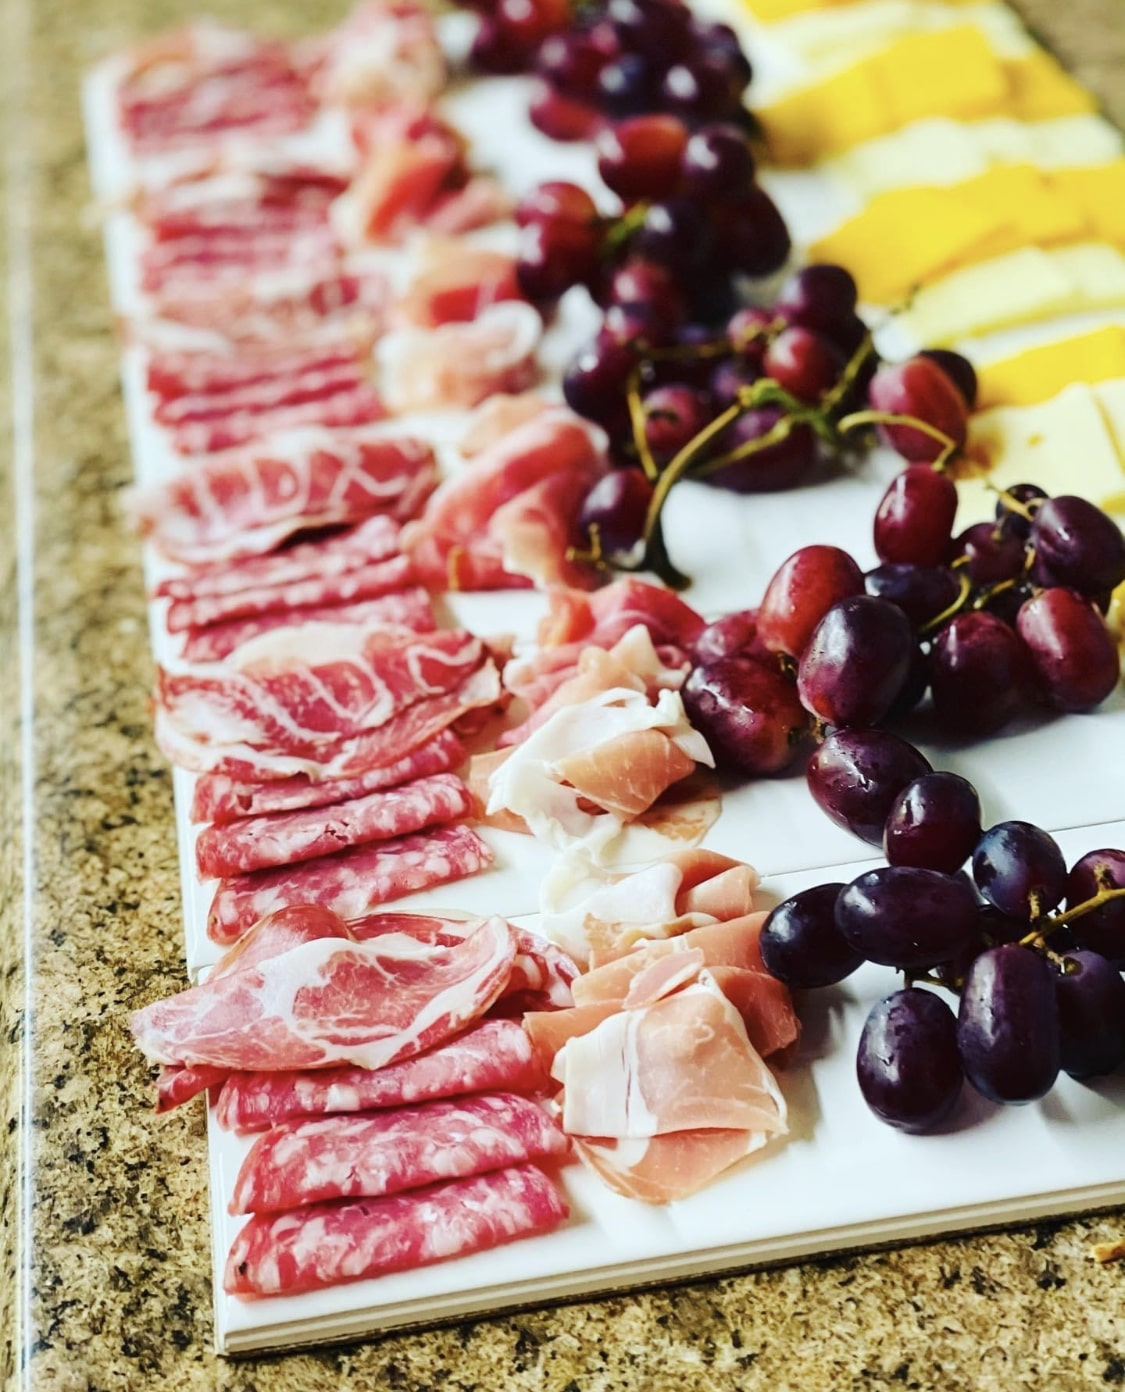 Meat and Chese platter at Madrona Tasting Room